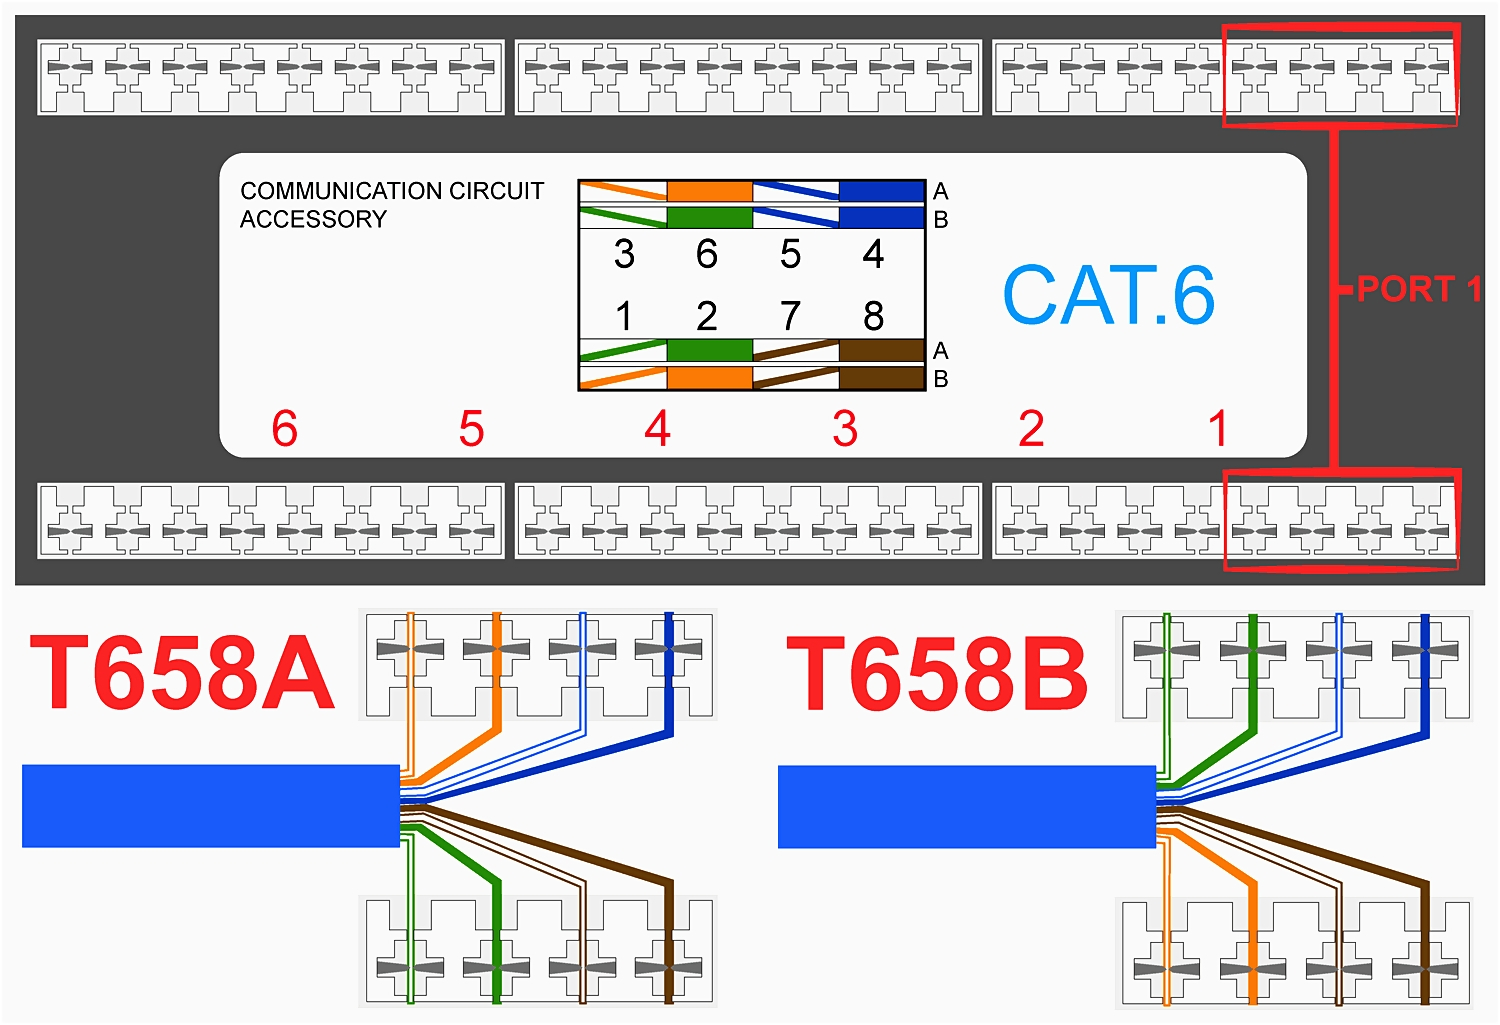 cat6 keystone jack wiring diagram Collection-Cat5e Keystone Jack Wiring Diagram Fresh 8000 Cat5e and Cat6 Cat6 Wall Plate Wiring Diagram 2-e